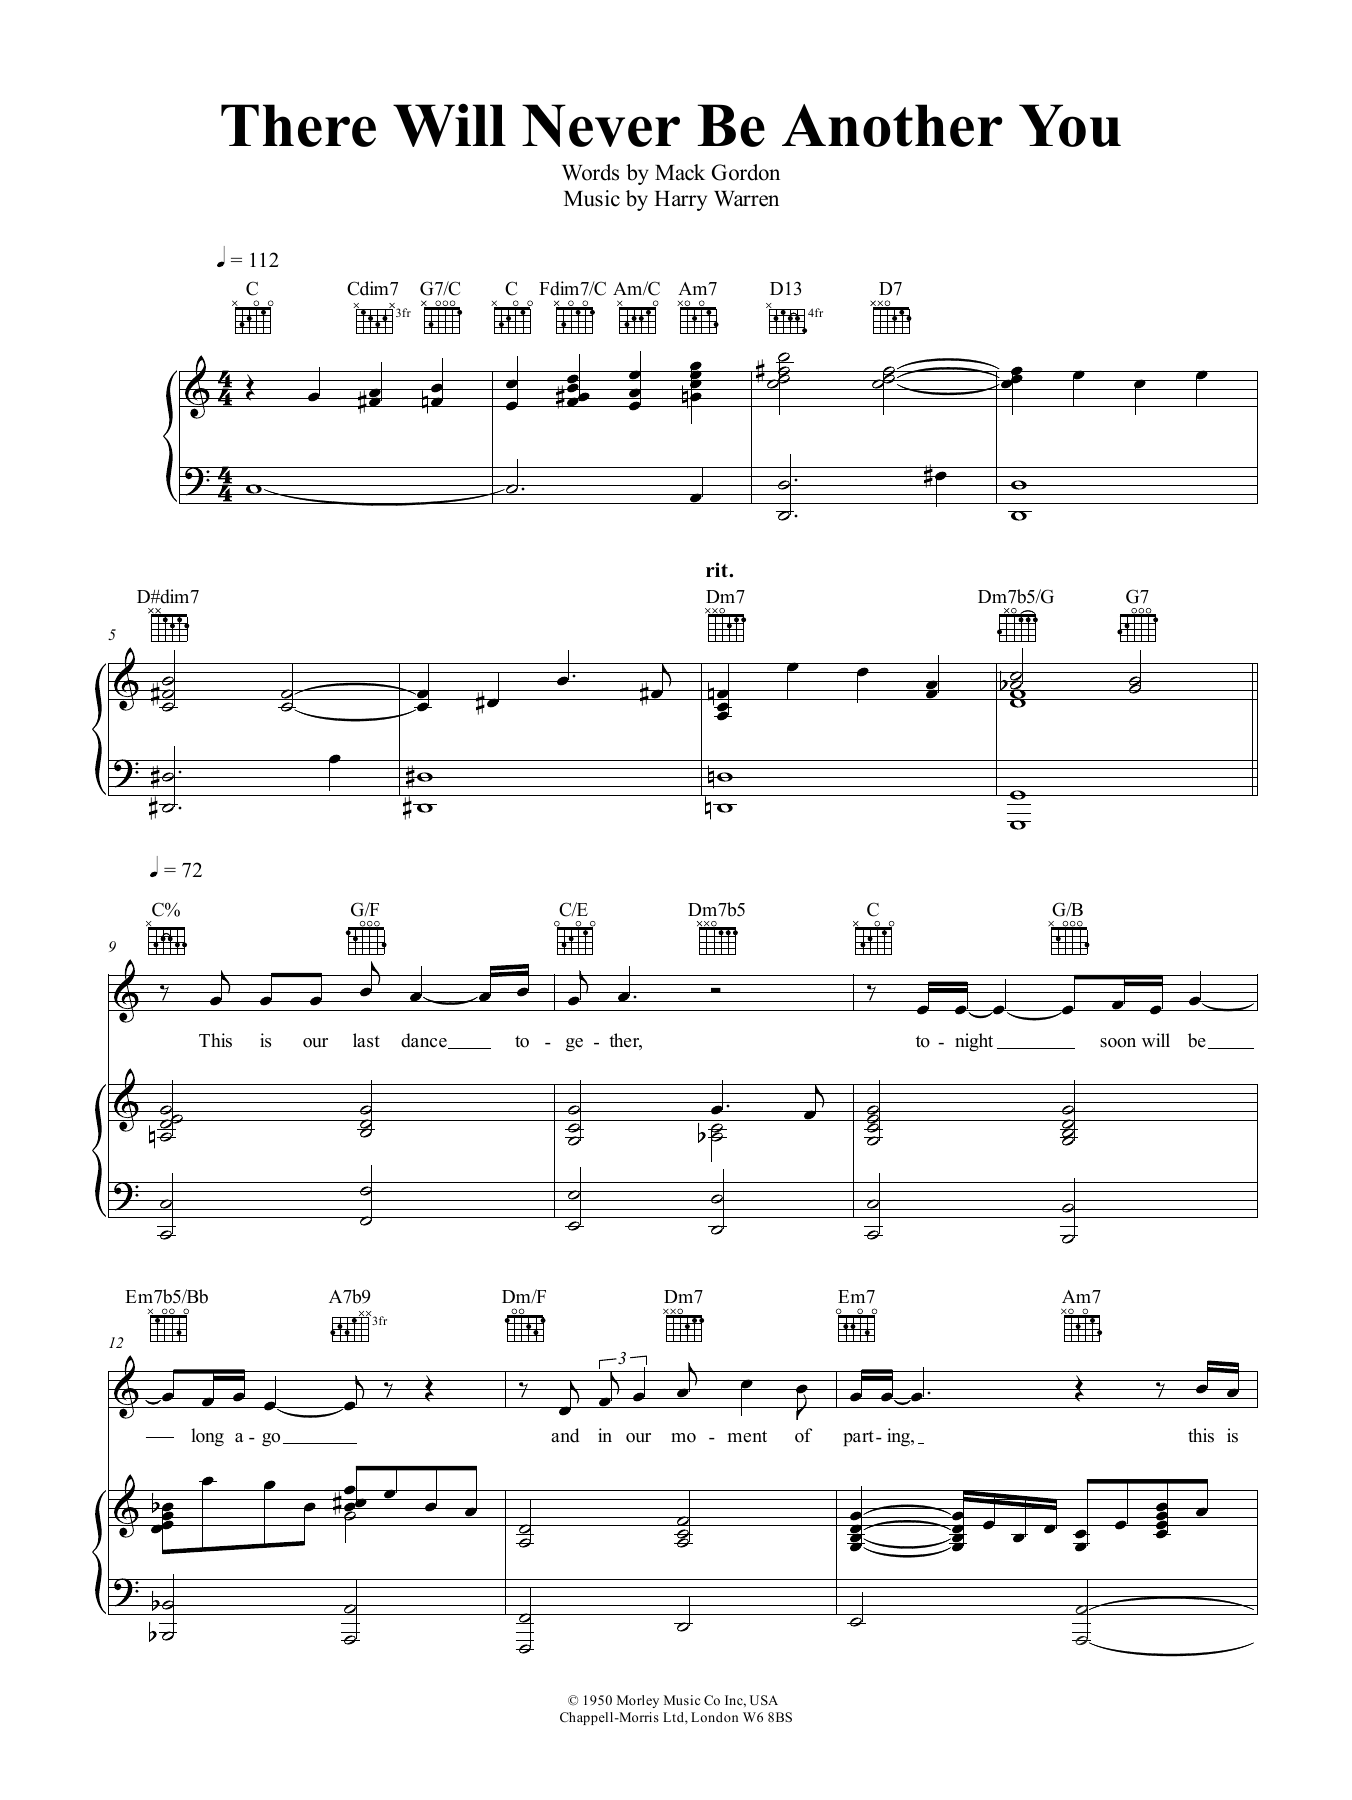 There Will Never Be Another You Sheet Music